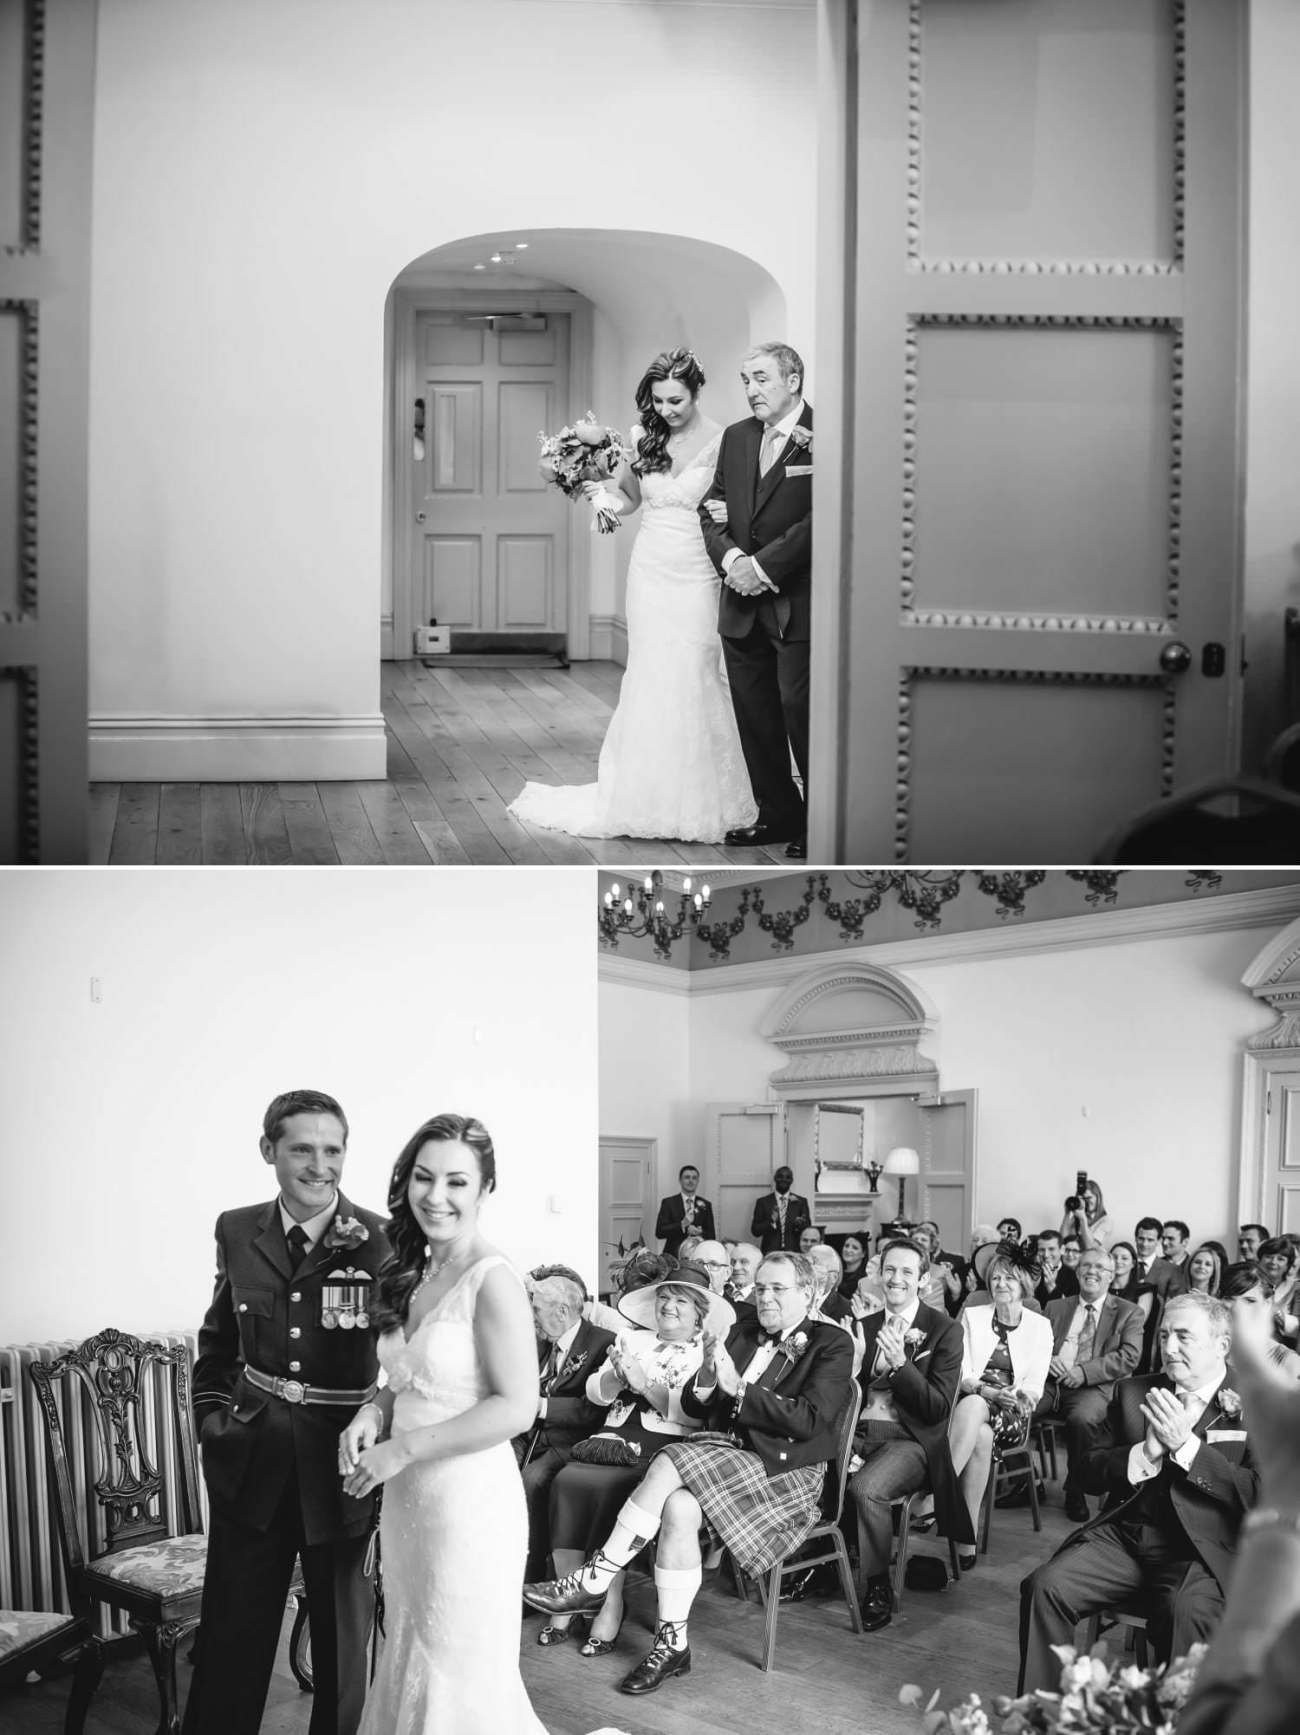 Weding Photography Shropshire of wedding ceremony in Ludlow Castle